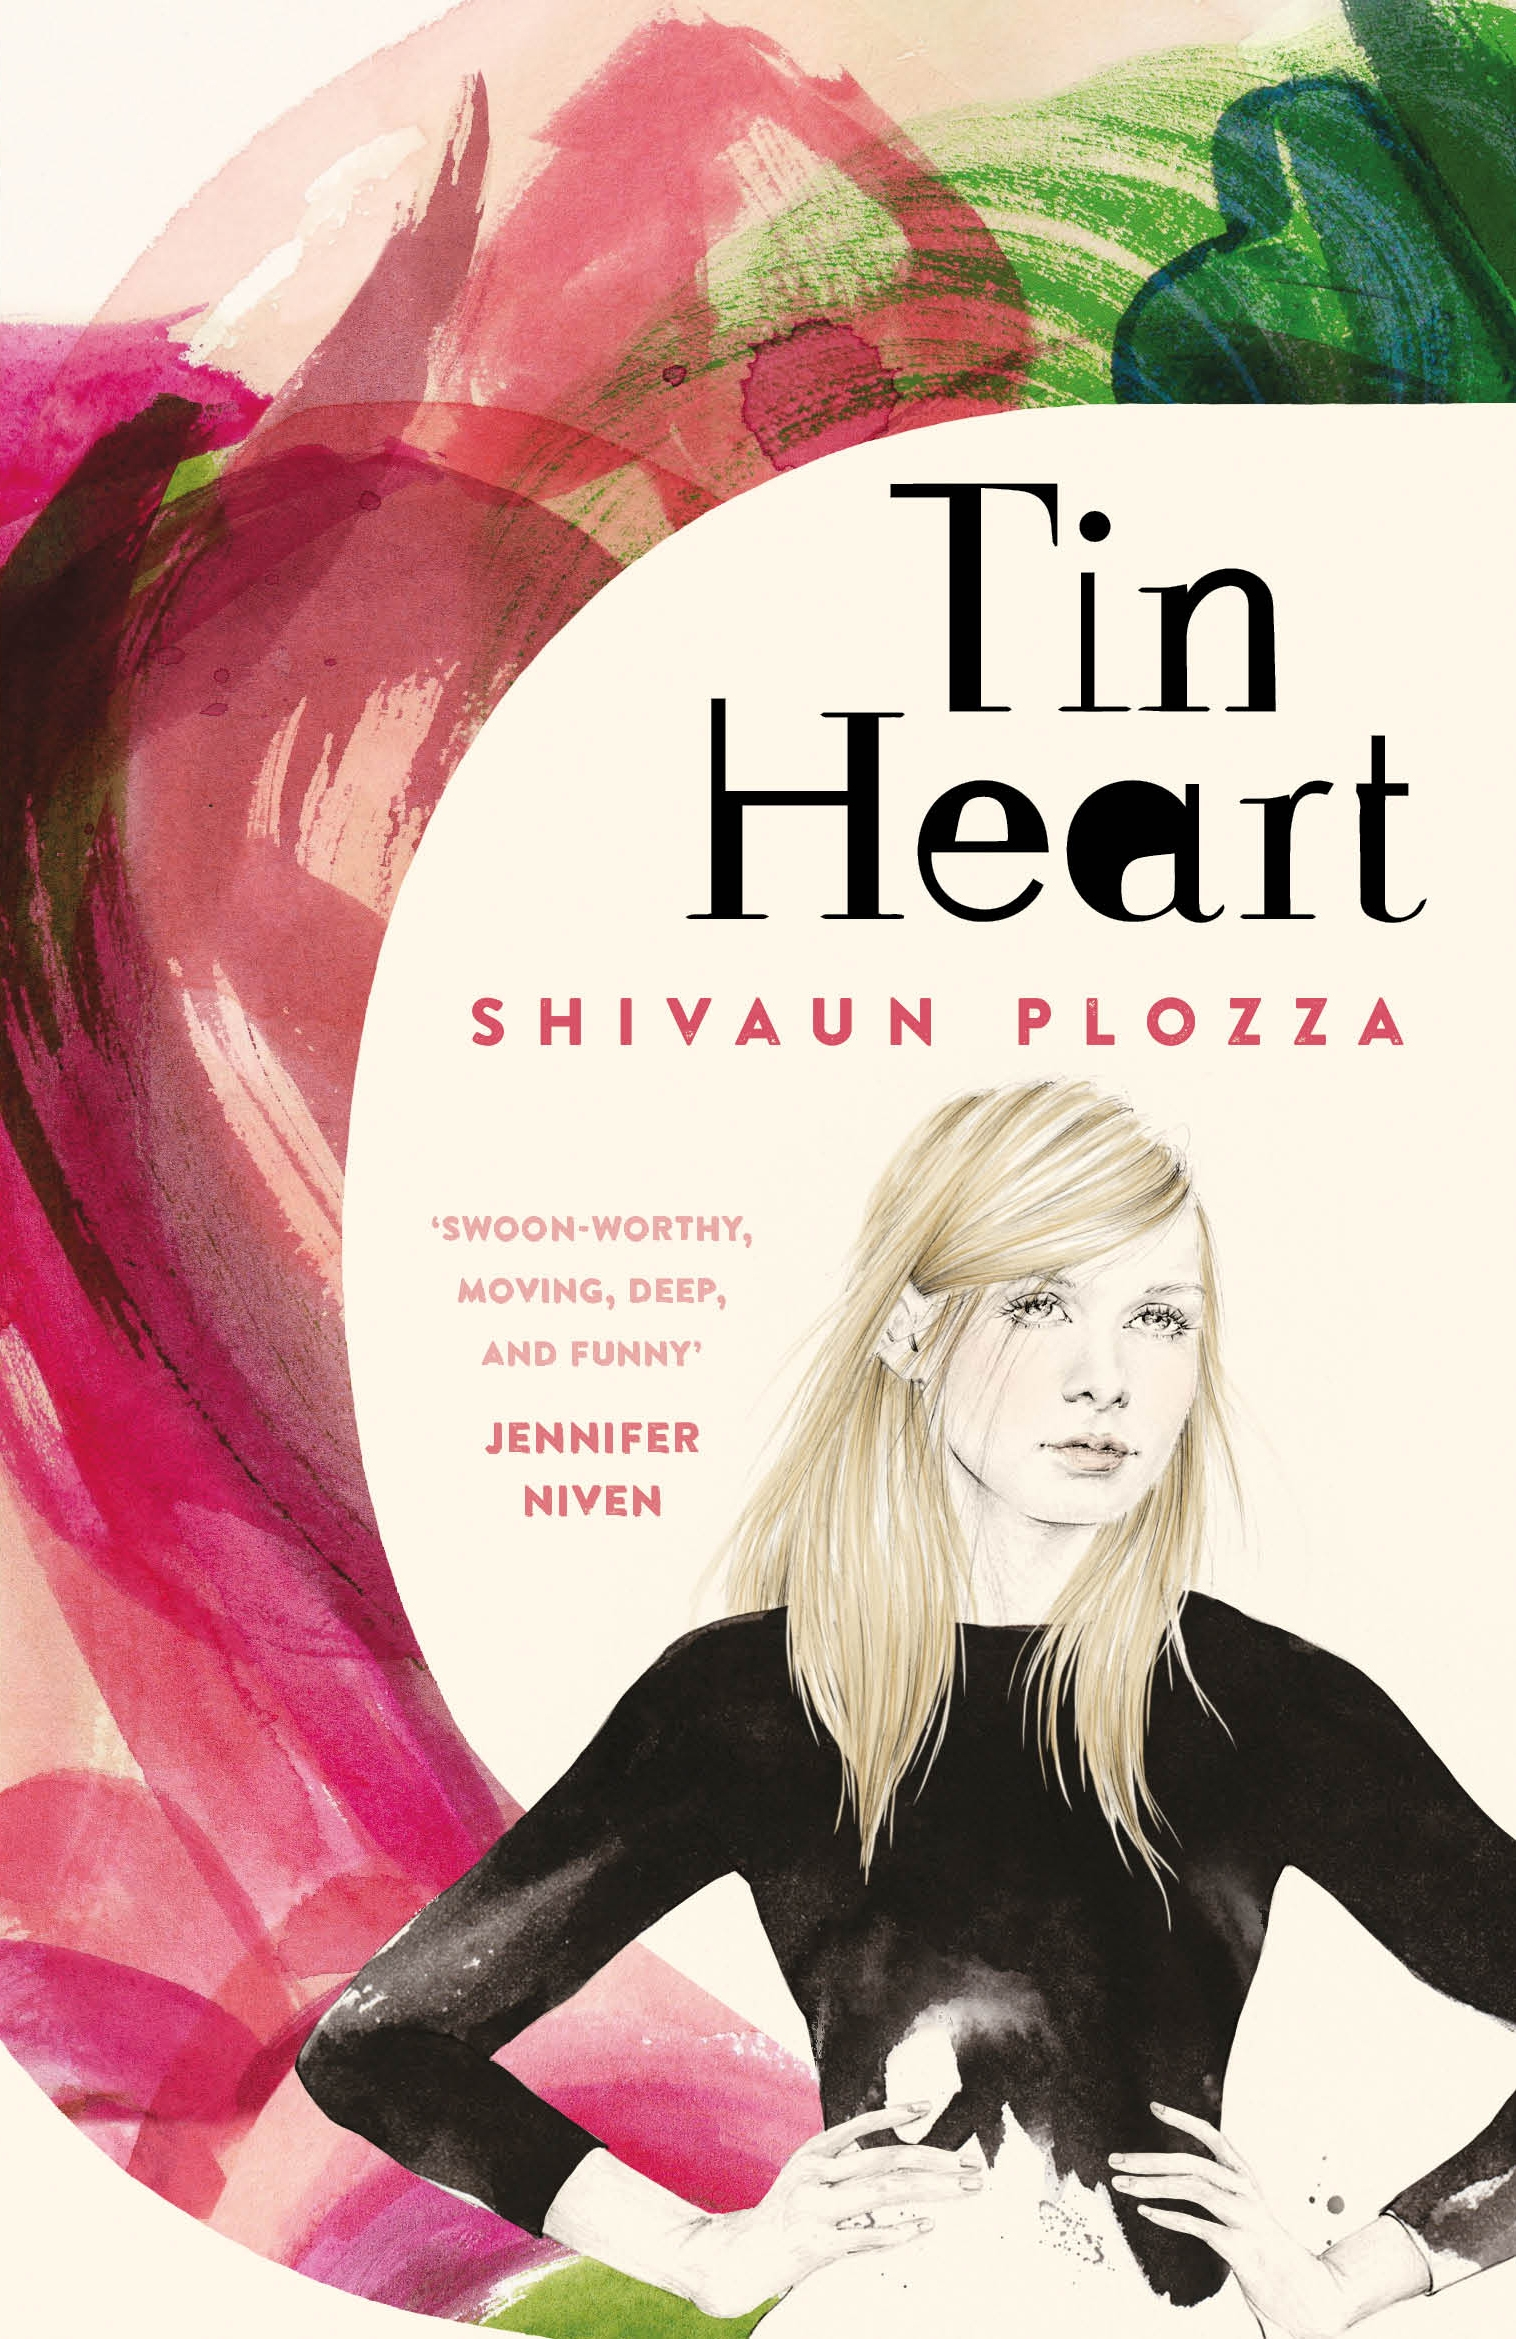 Image result for tin heart shivaun plozza